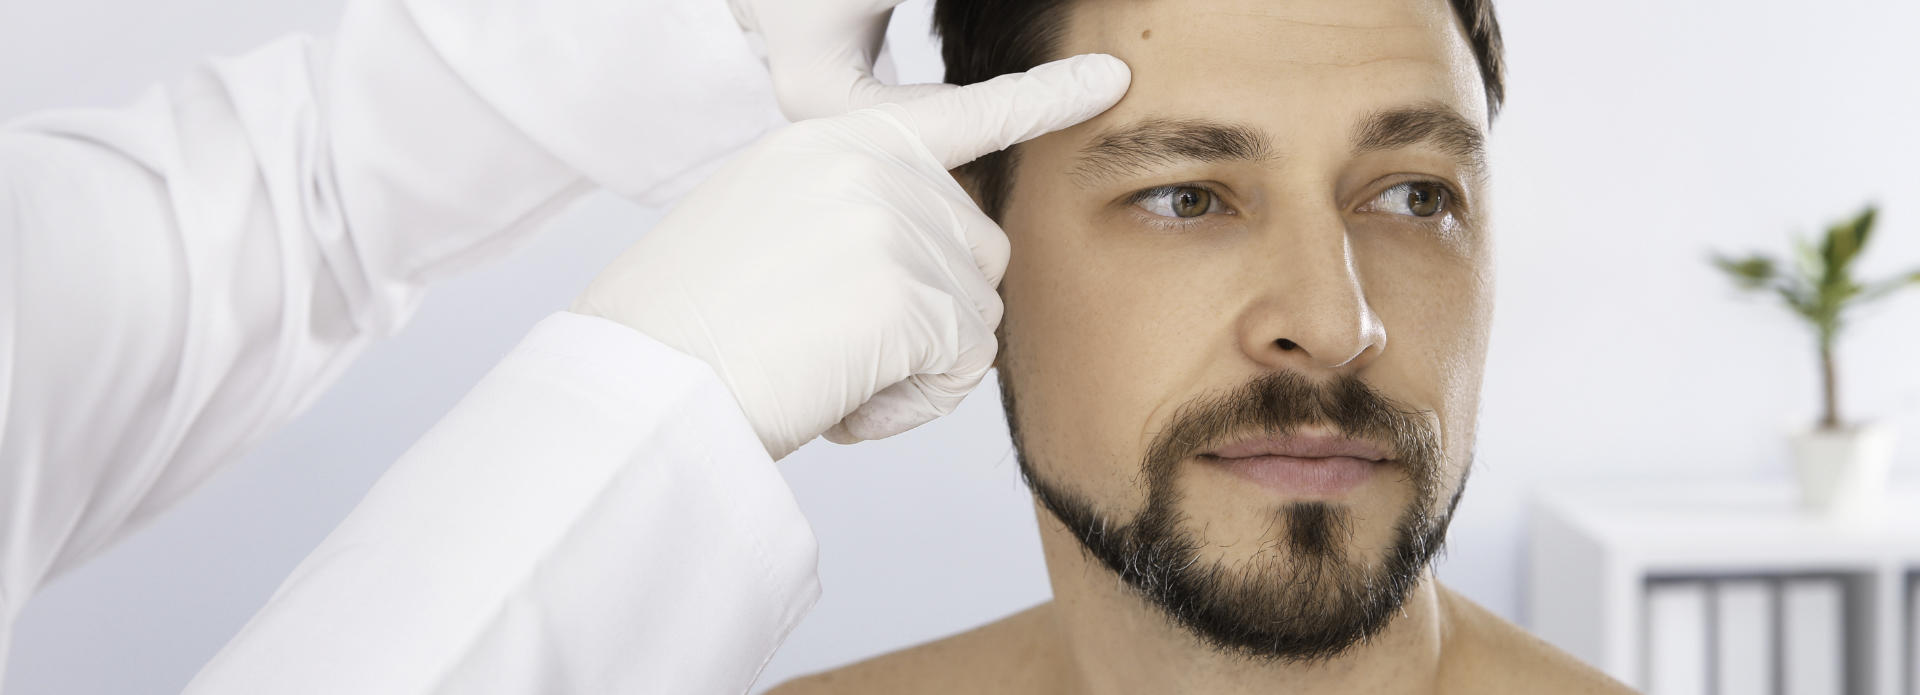 the face of a man with a birthmark being checked by a doctor